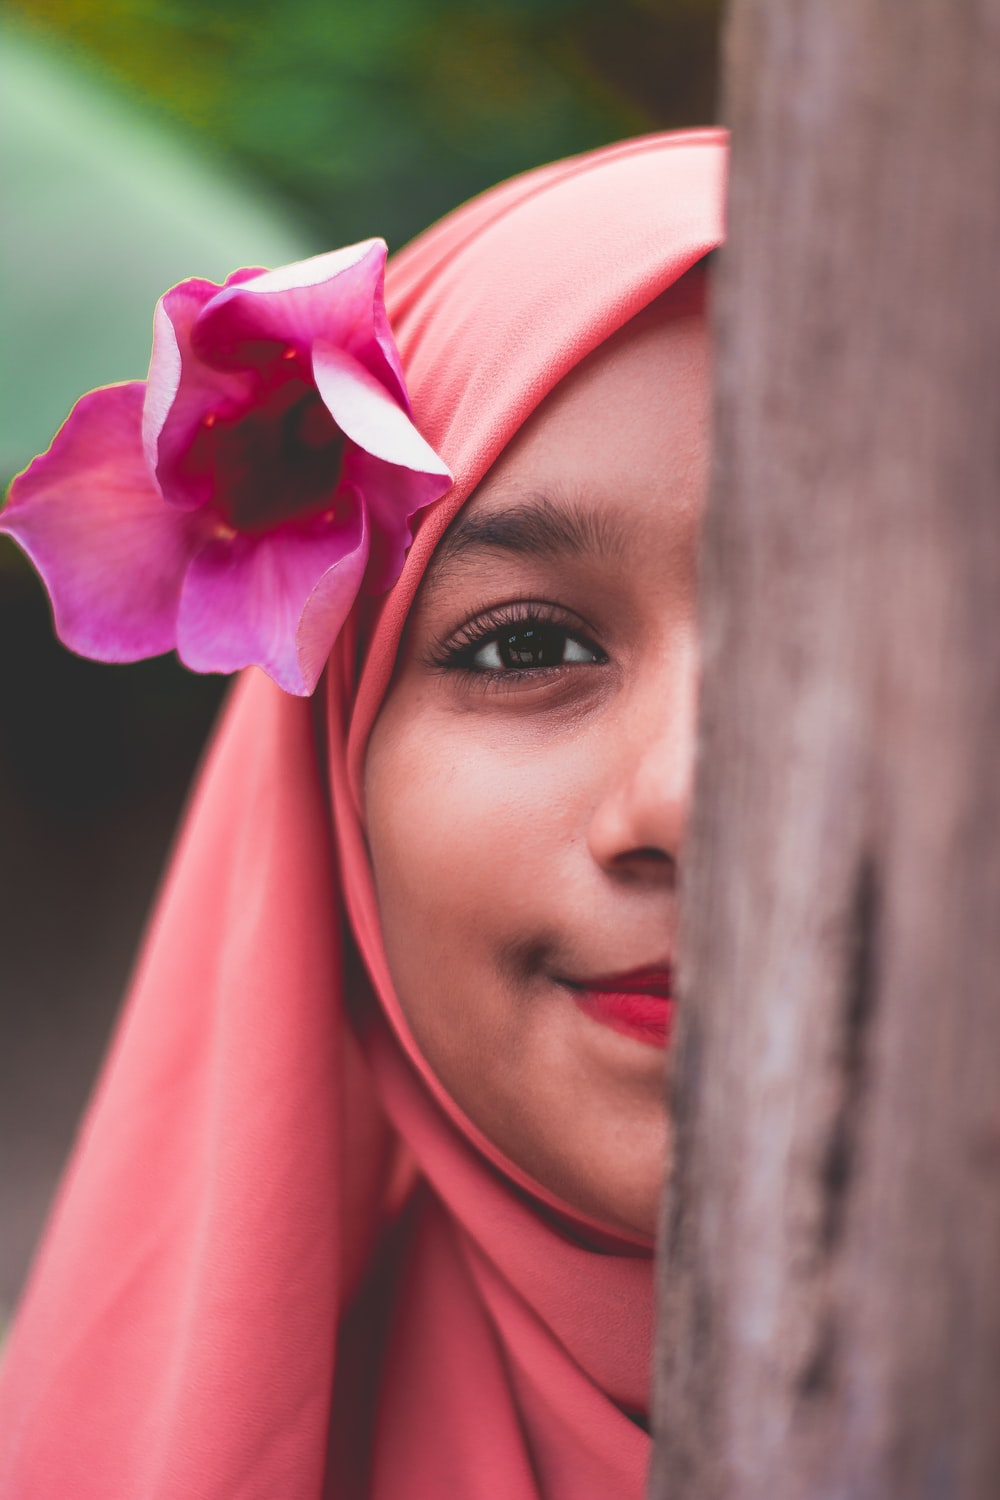 woman in pink hijab and red lipstick